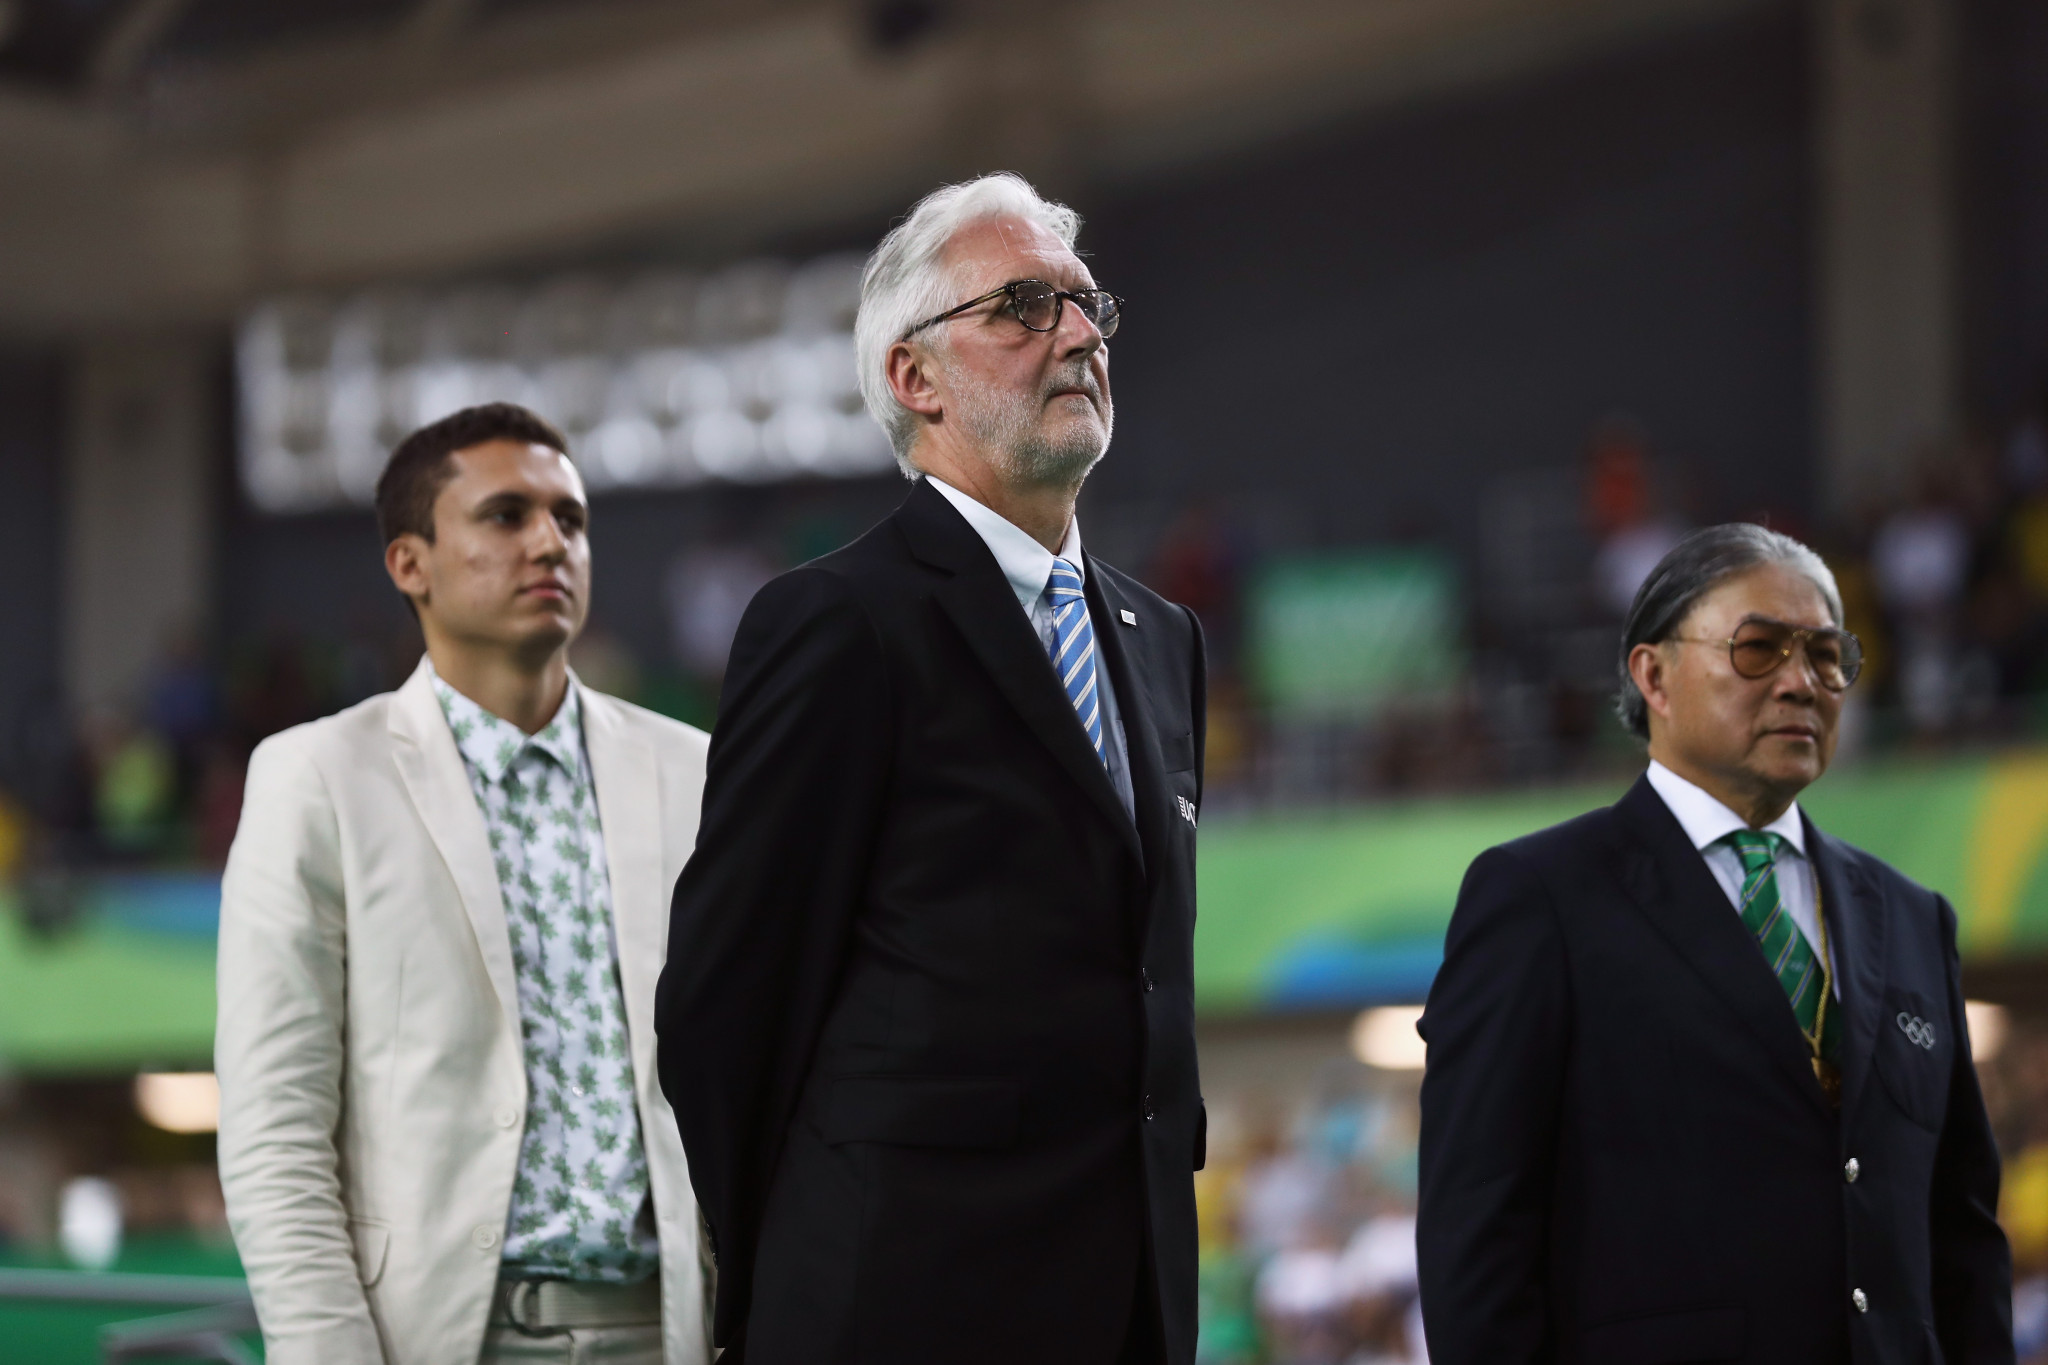 Brian Cookson, centre, is seeking to secure a second term as President ©Getty Images